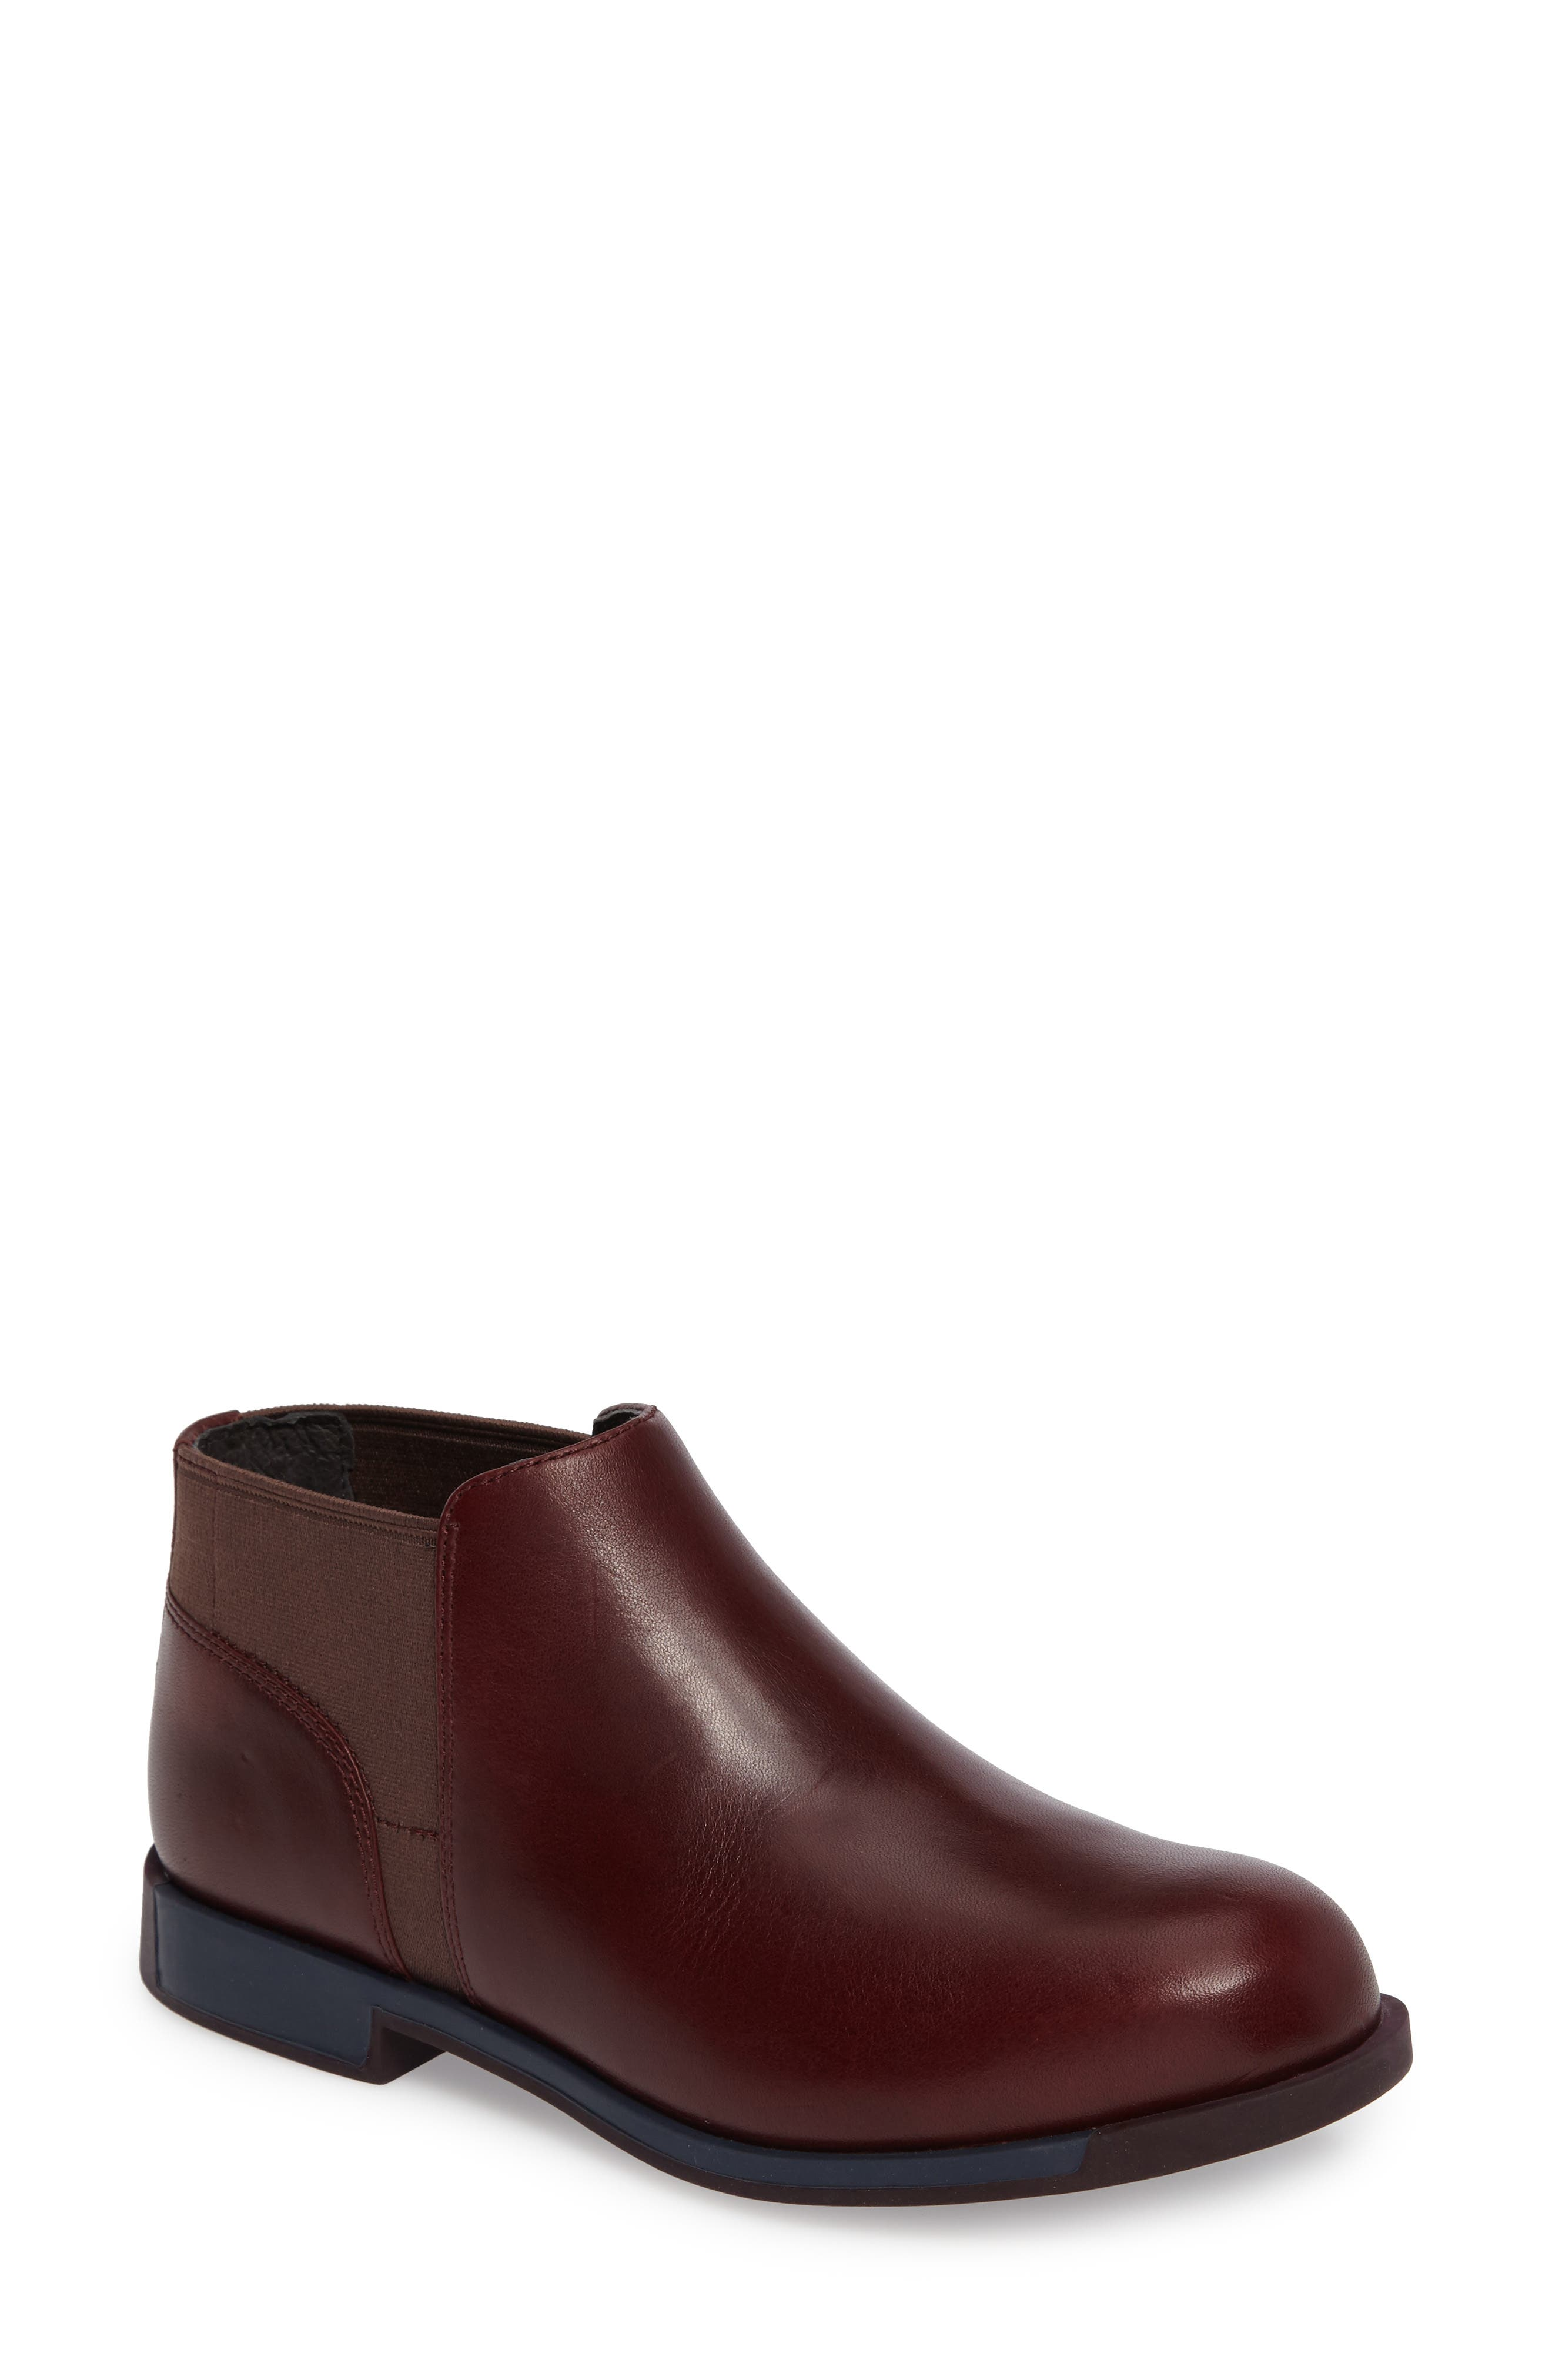 Alternate Image 1 Selected - Camper Bowie Chelsea Boot (Women)